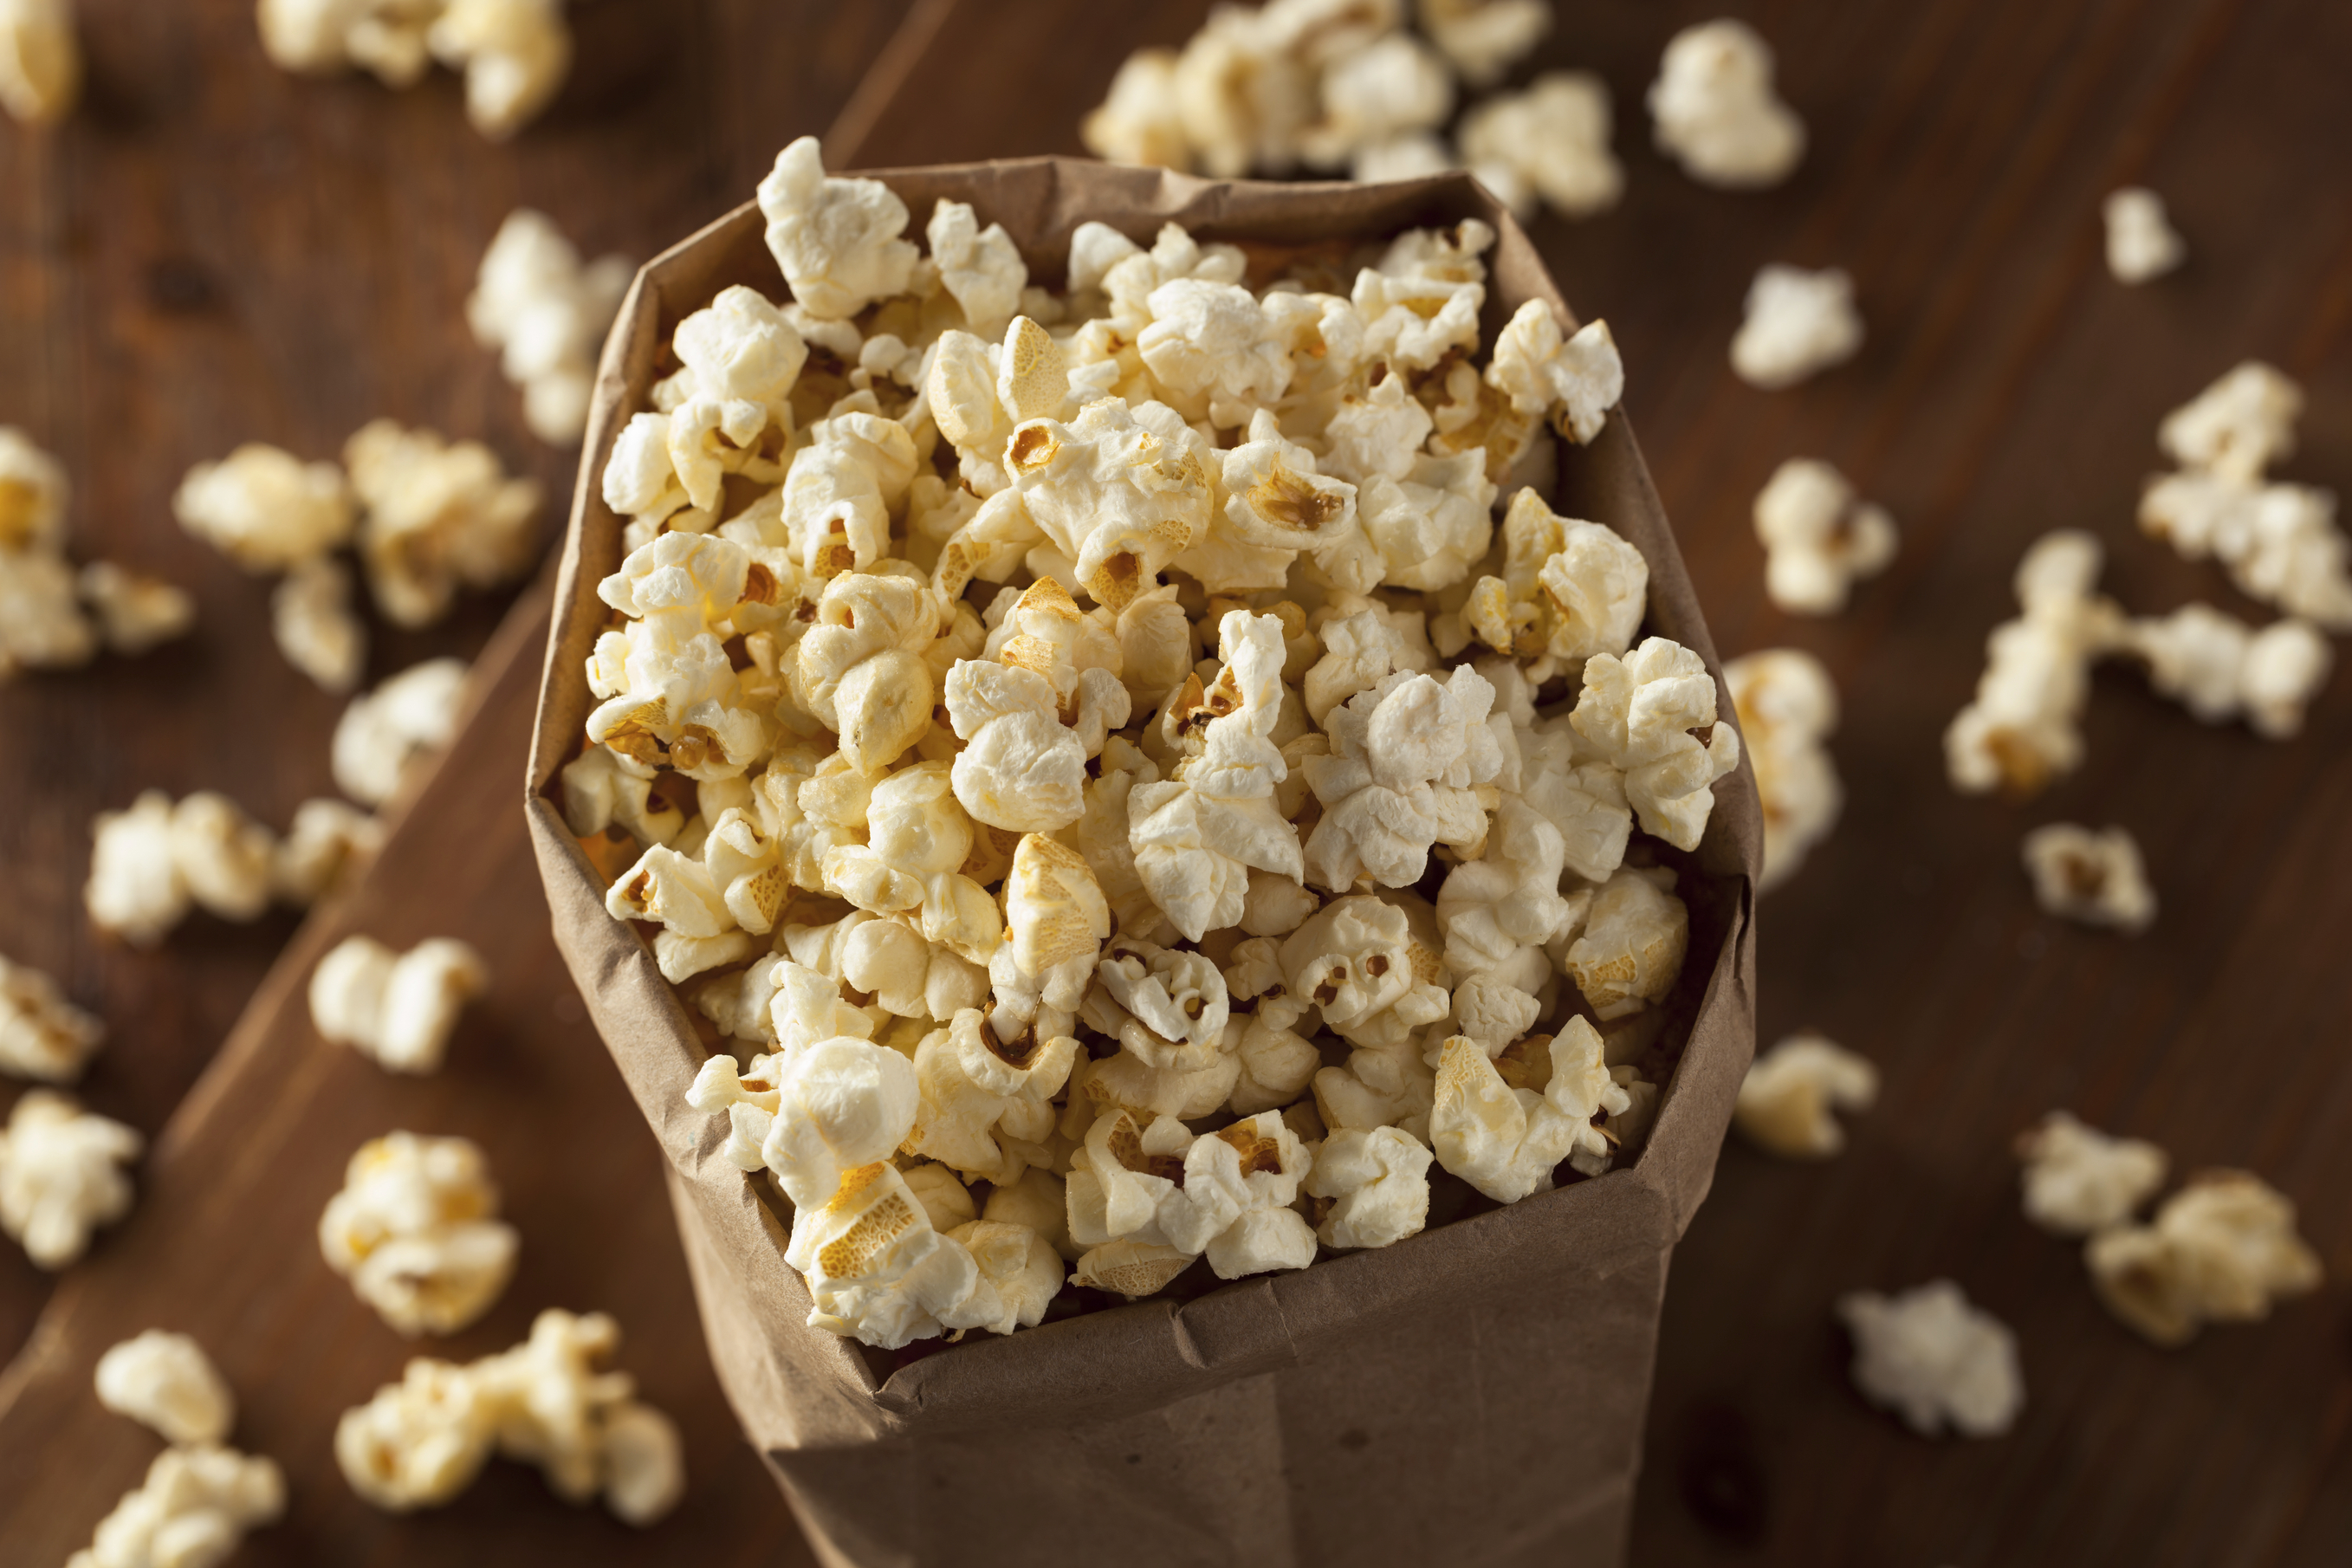 <strong>Popcorn (31 calories per serve)</strong>